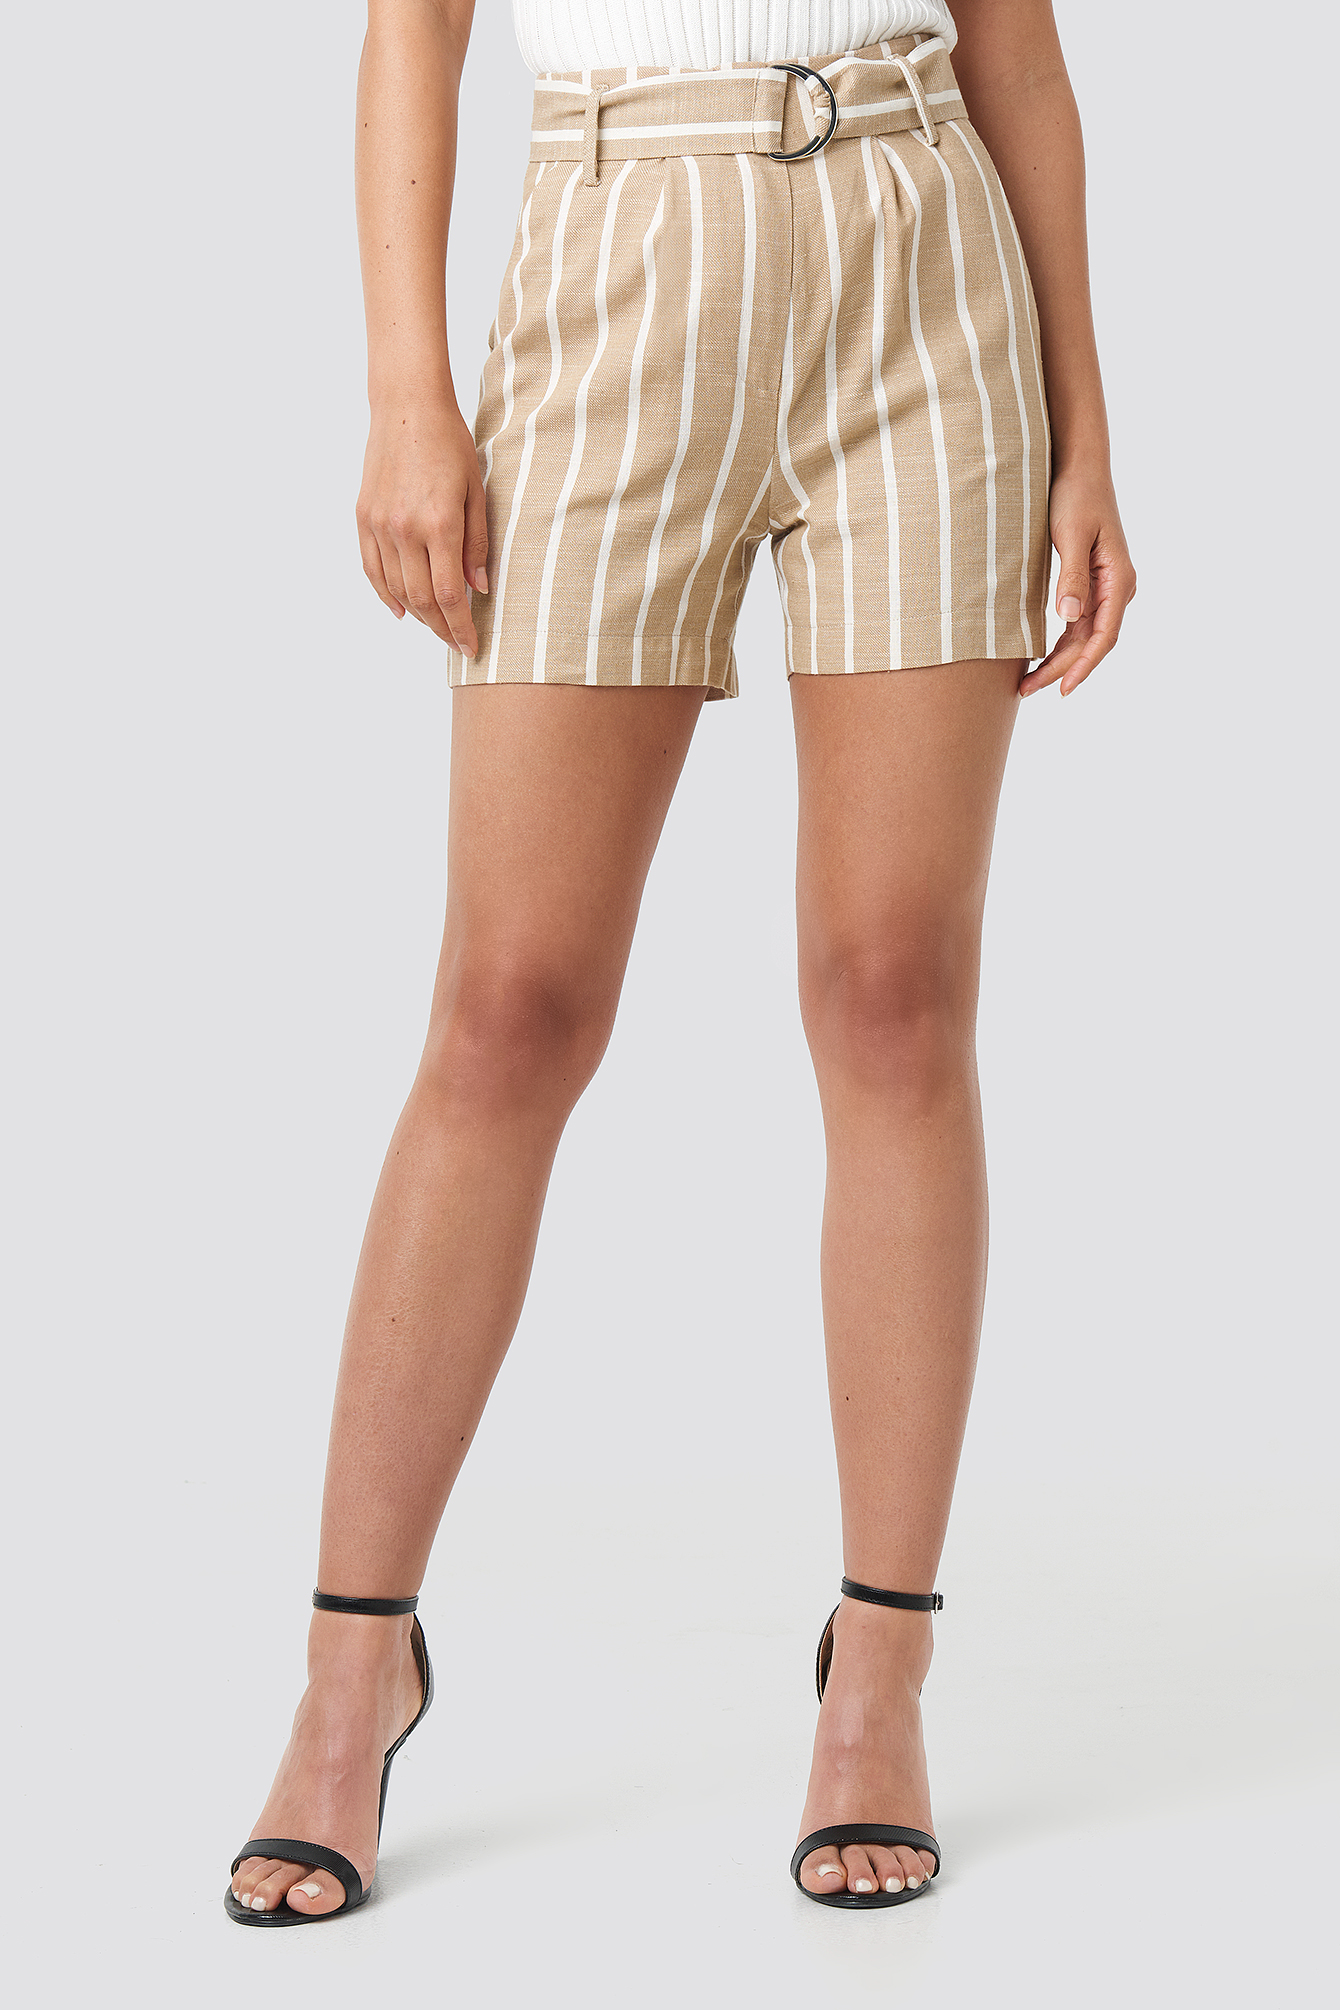 Linen Look Striped Shorts NA-KD.COM